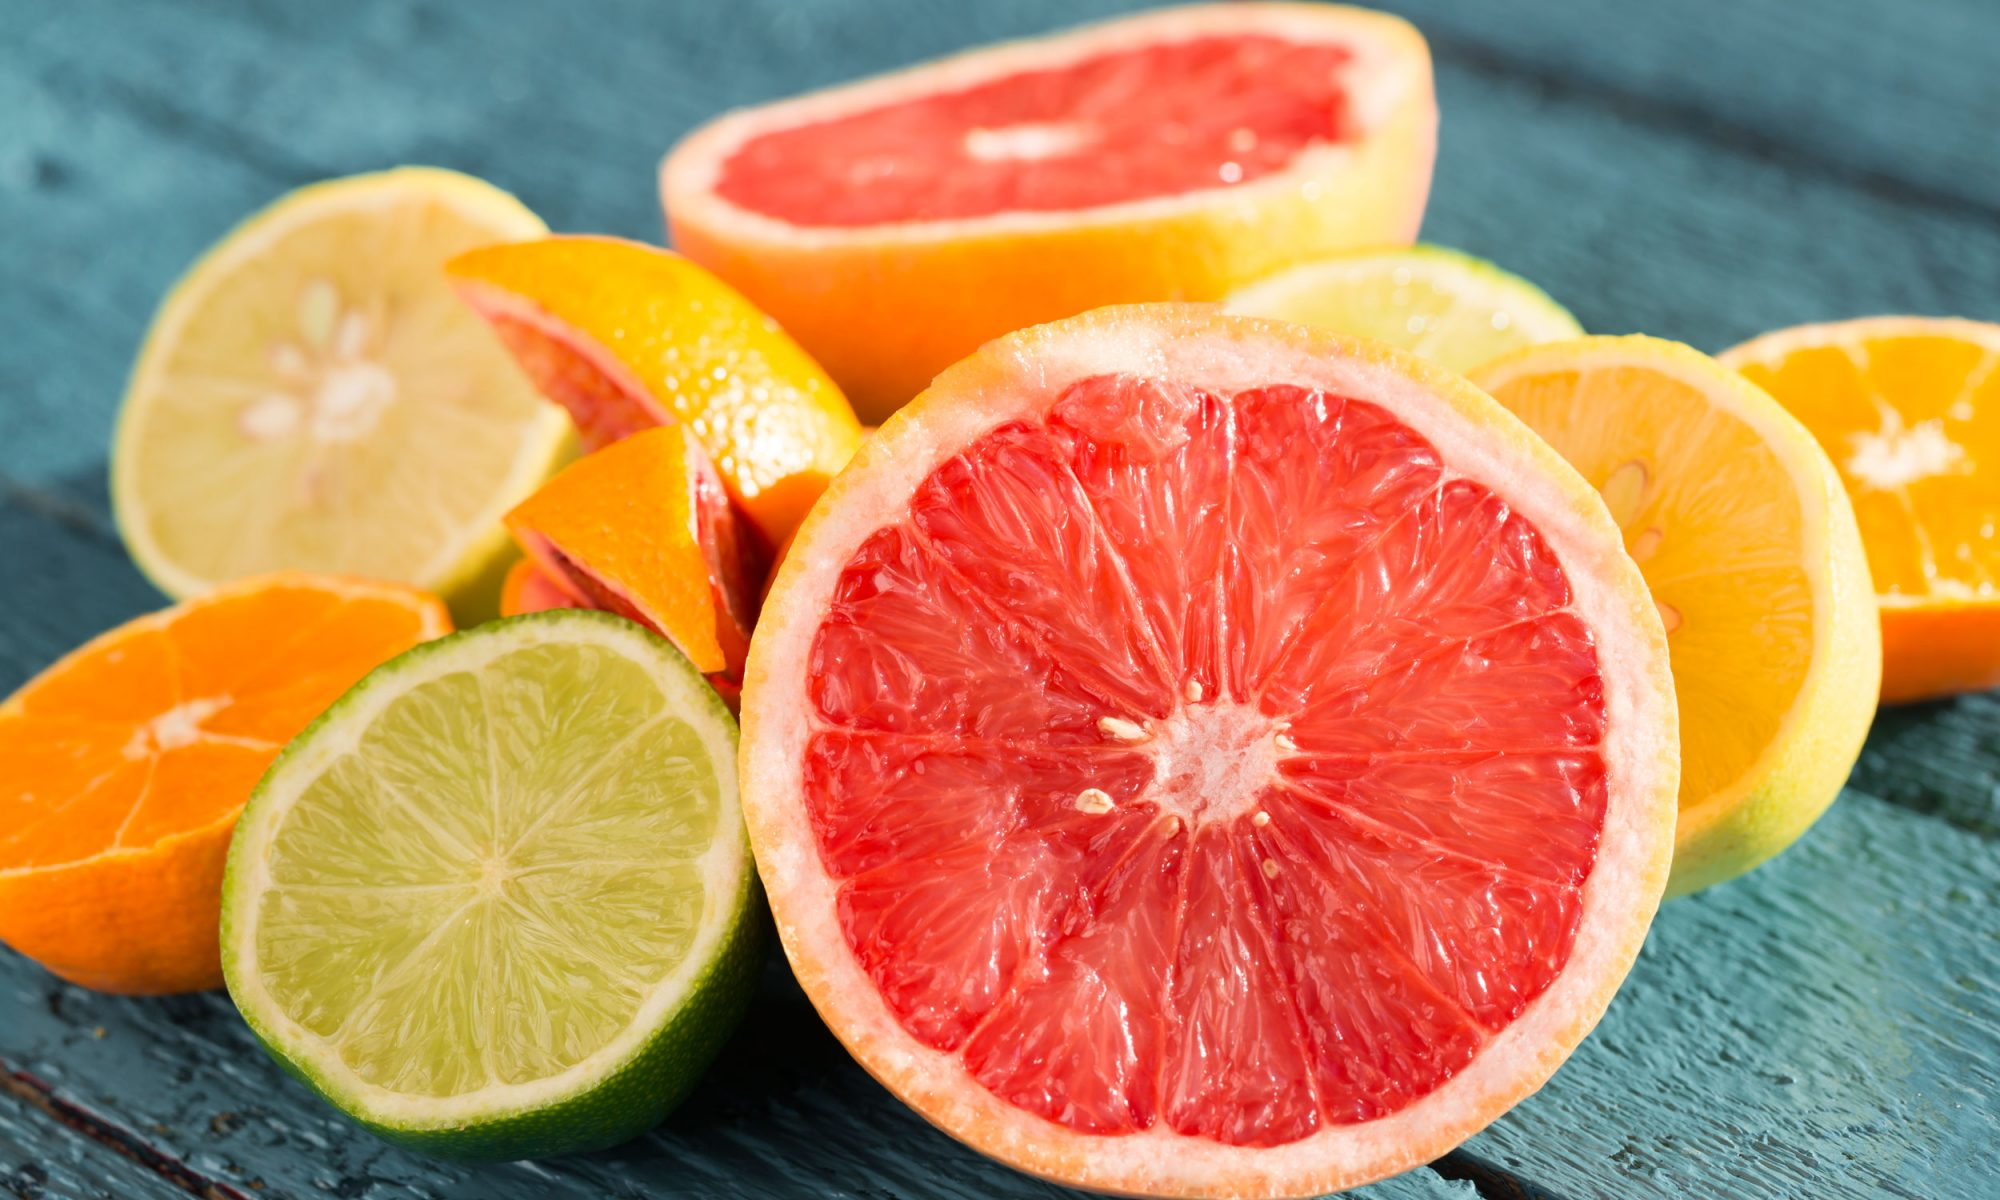 EC: Wake Up Your Skin with Citrus-Based Beauty DIYs